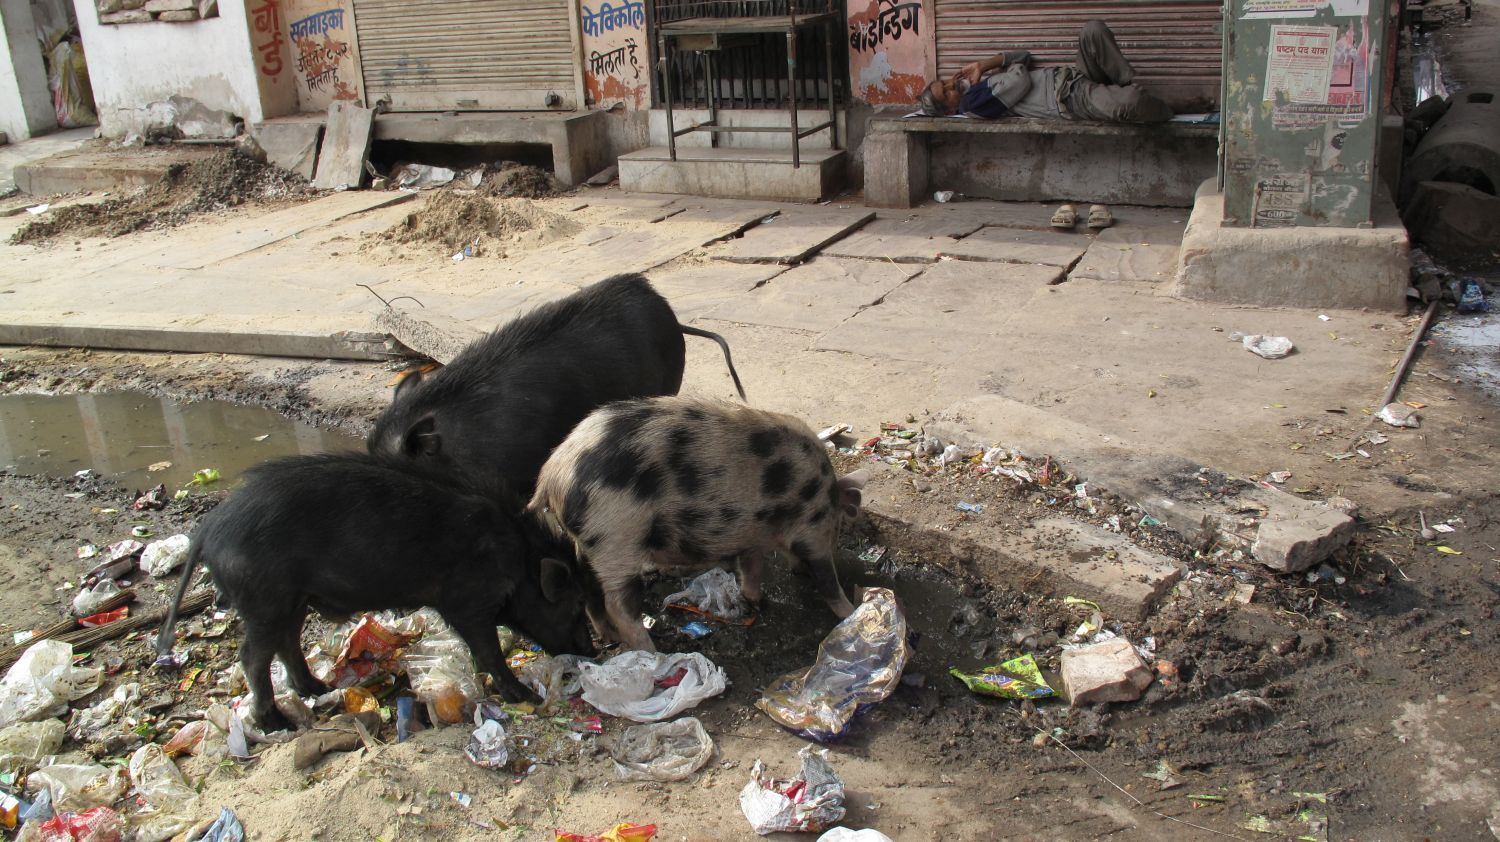 Jaipur | Pink city | Rajasthan | Coats and pigs in Jaipur | ©sandrine cohen